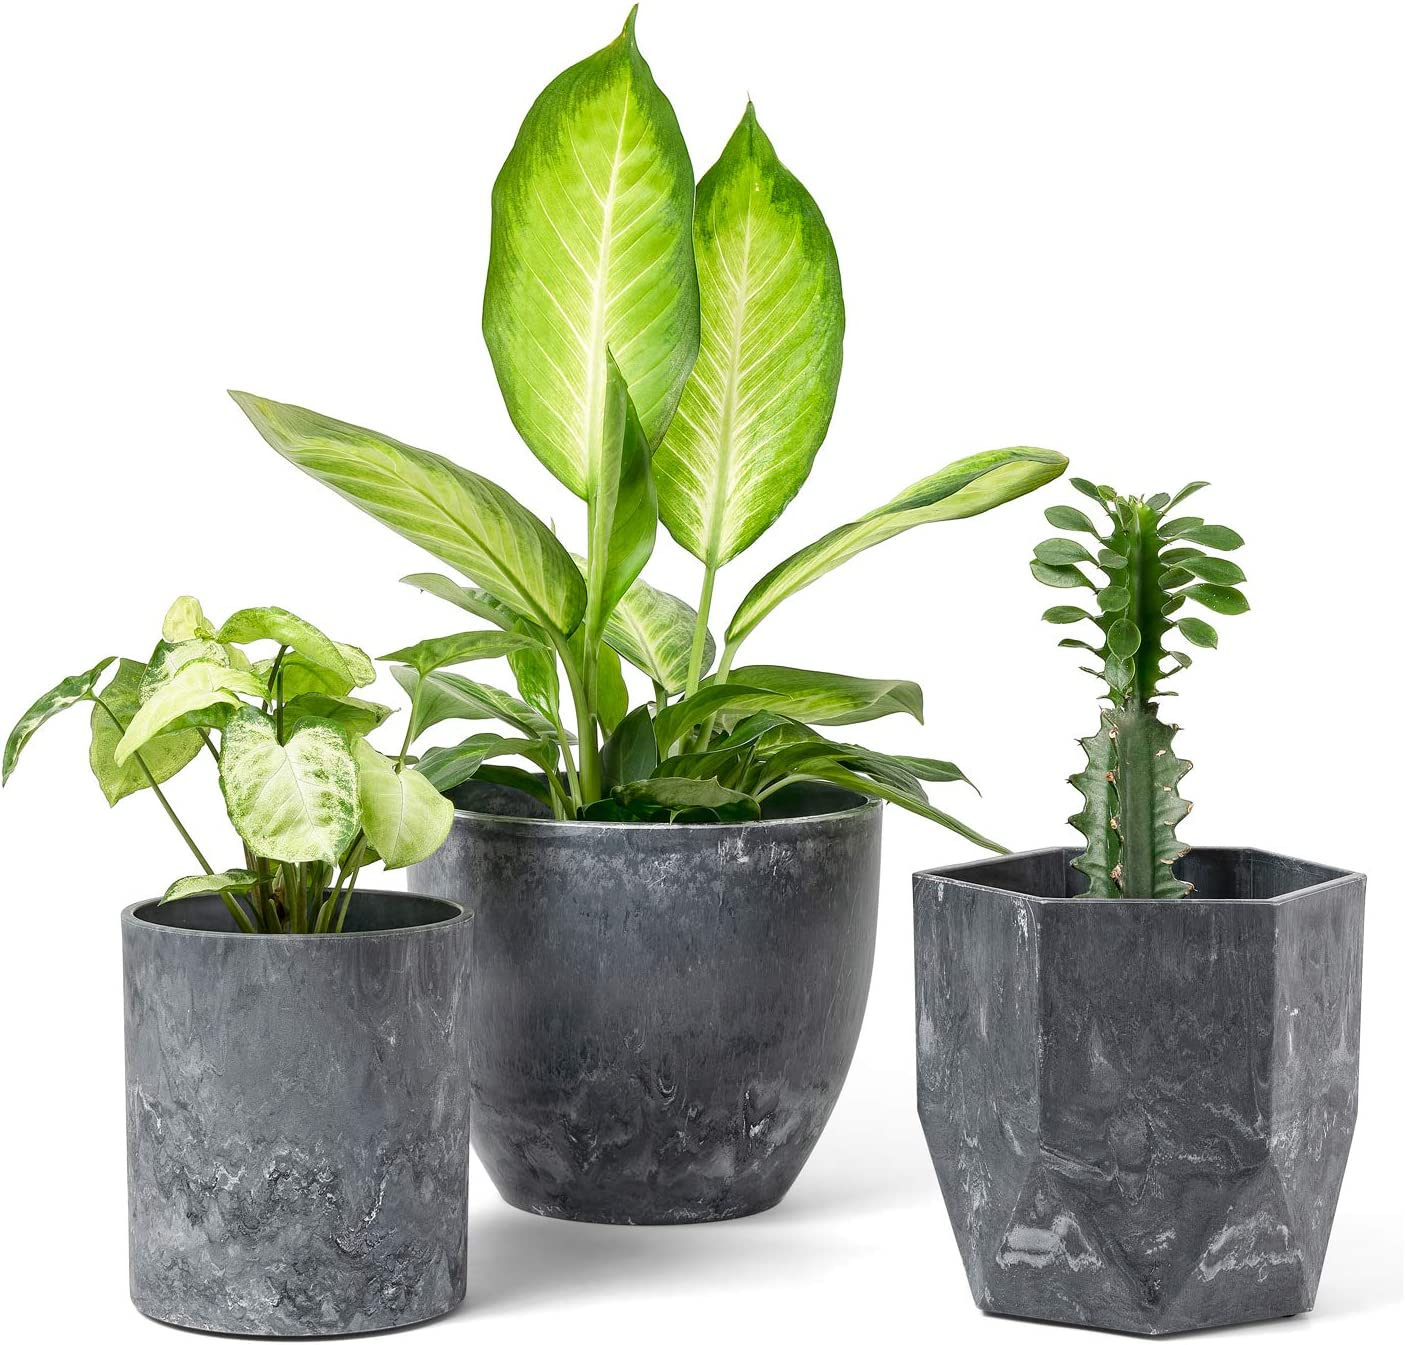 Dahey Resin Flower Pots with Drinage Indoor Plant Pots Outdoor Graden Planter, 3 Different Shape Marble Pattern Container Modern Industrial for Succulent Herb Plants, Grey (8+6+5 Inch)